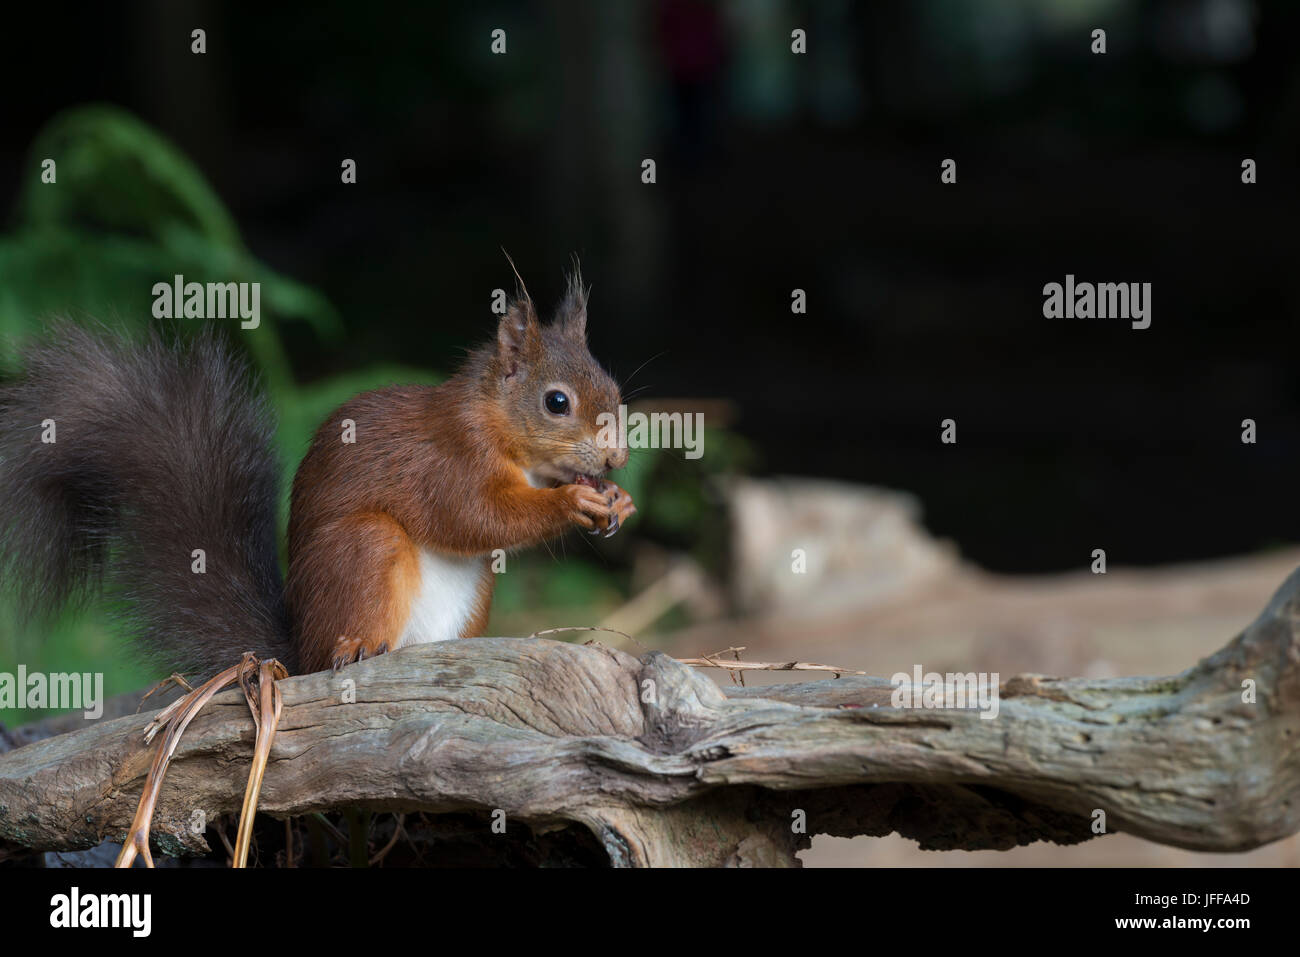 Red Squirrel on Log - Stock Image